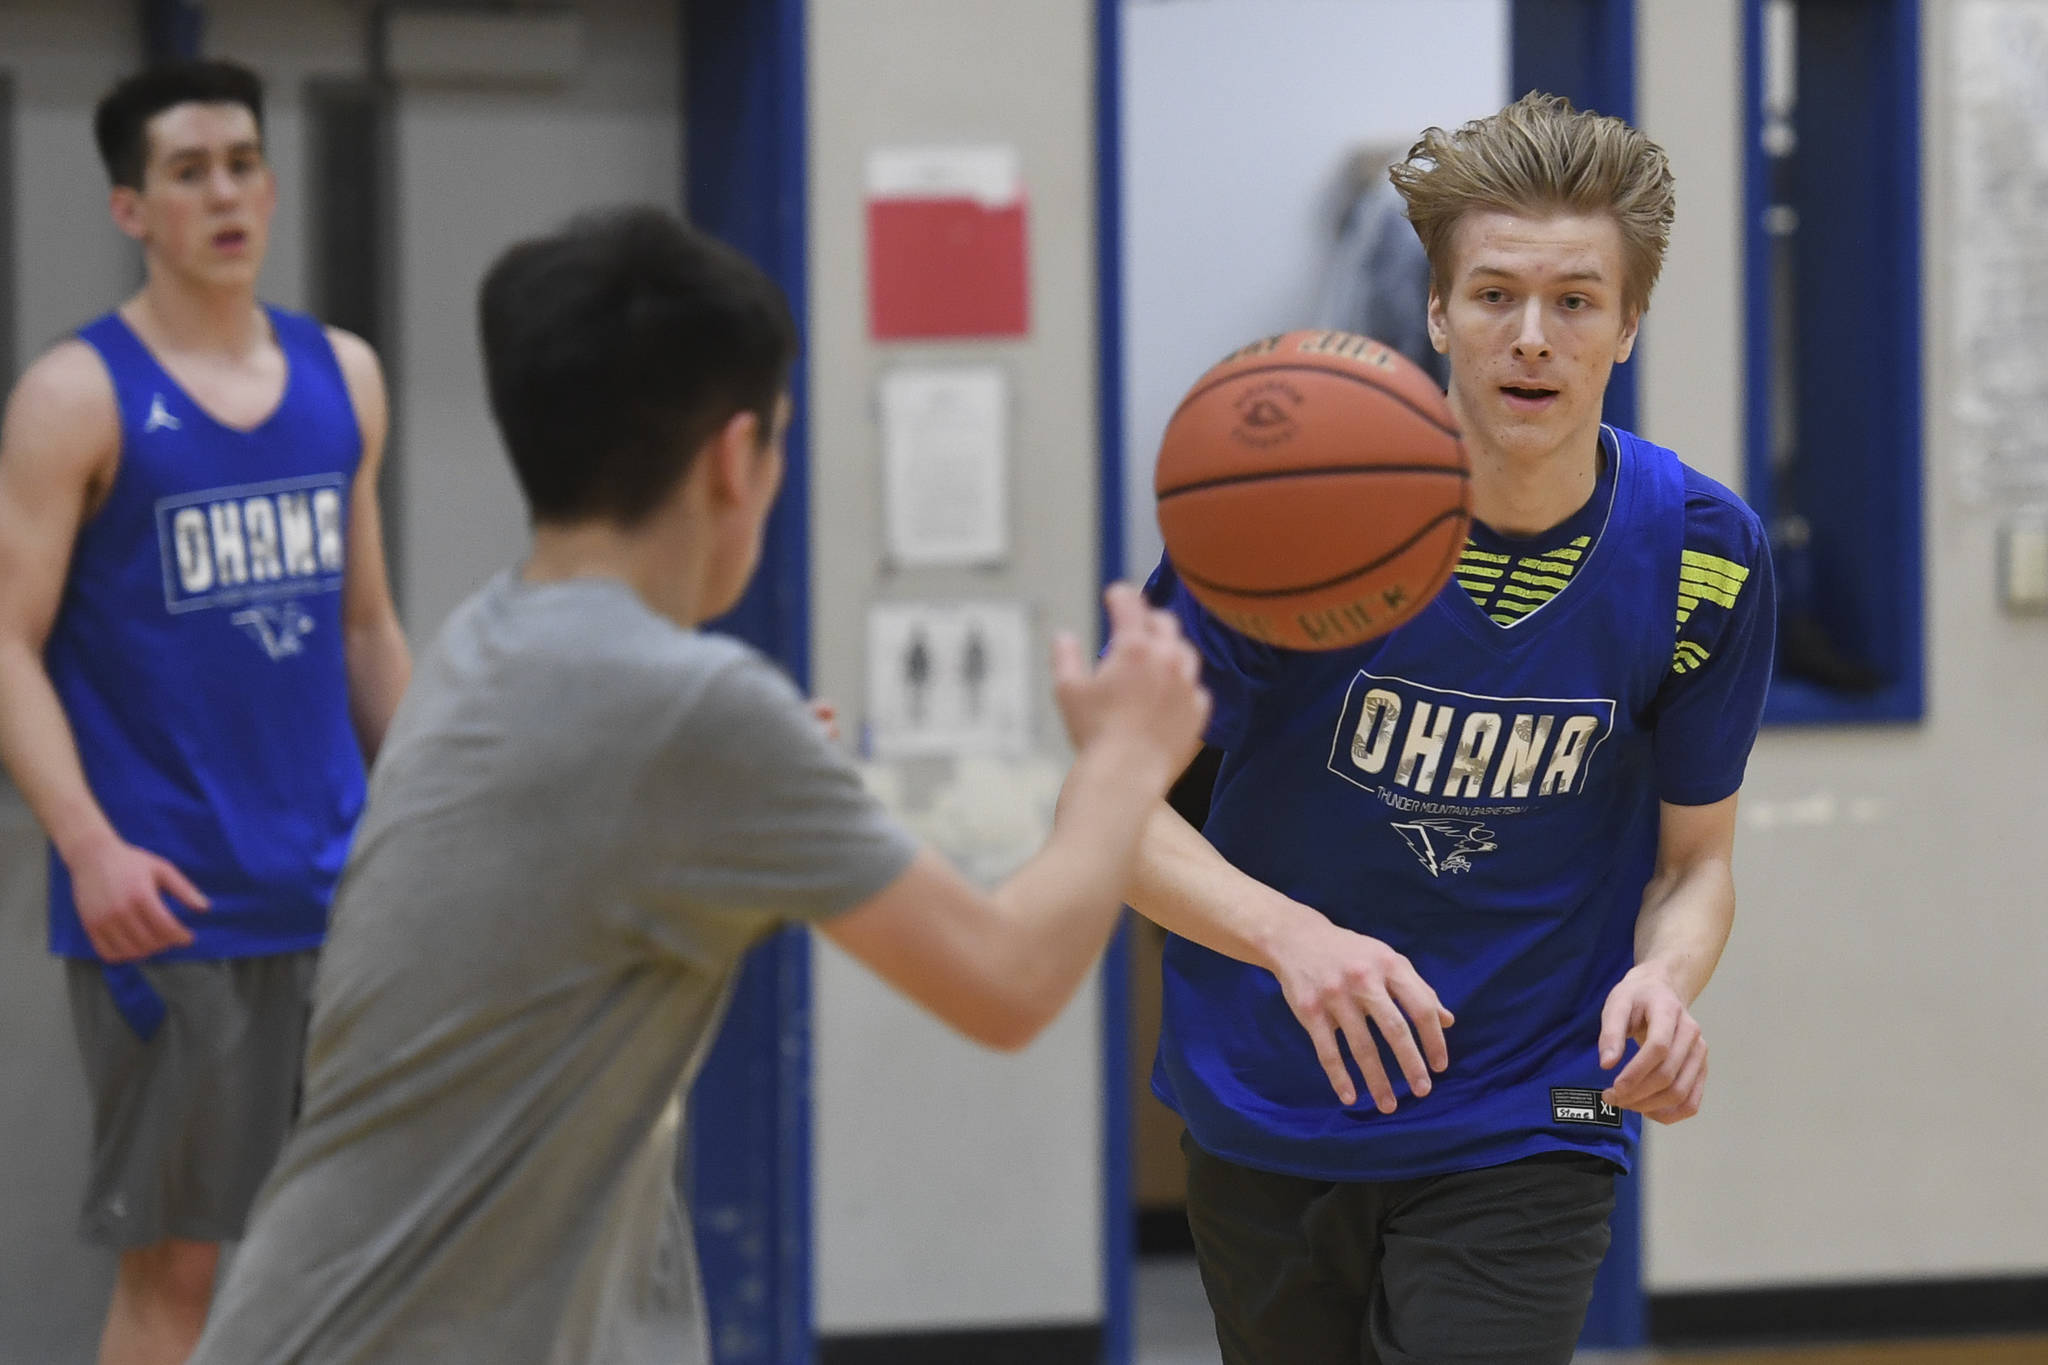 Stone Morgan, right, makes a pass during boys varsity basketball practice at Thunder Mountain High School on Tuesday, Dec. 10, 2019. (Michael Penn | Juneau Empire)